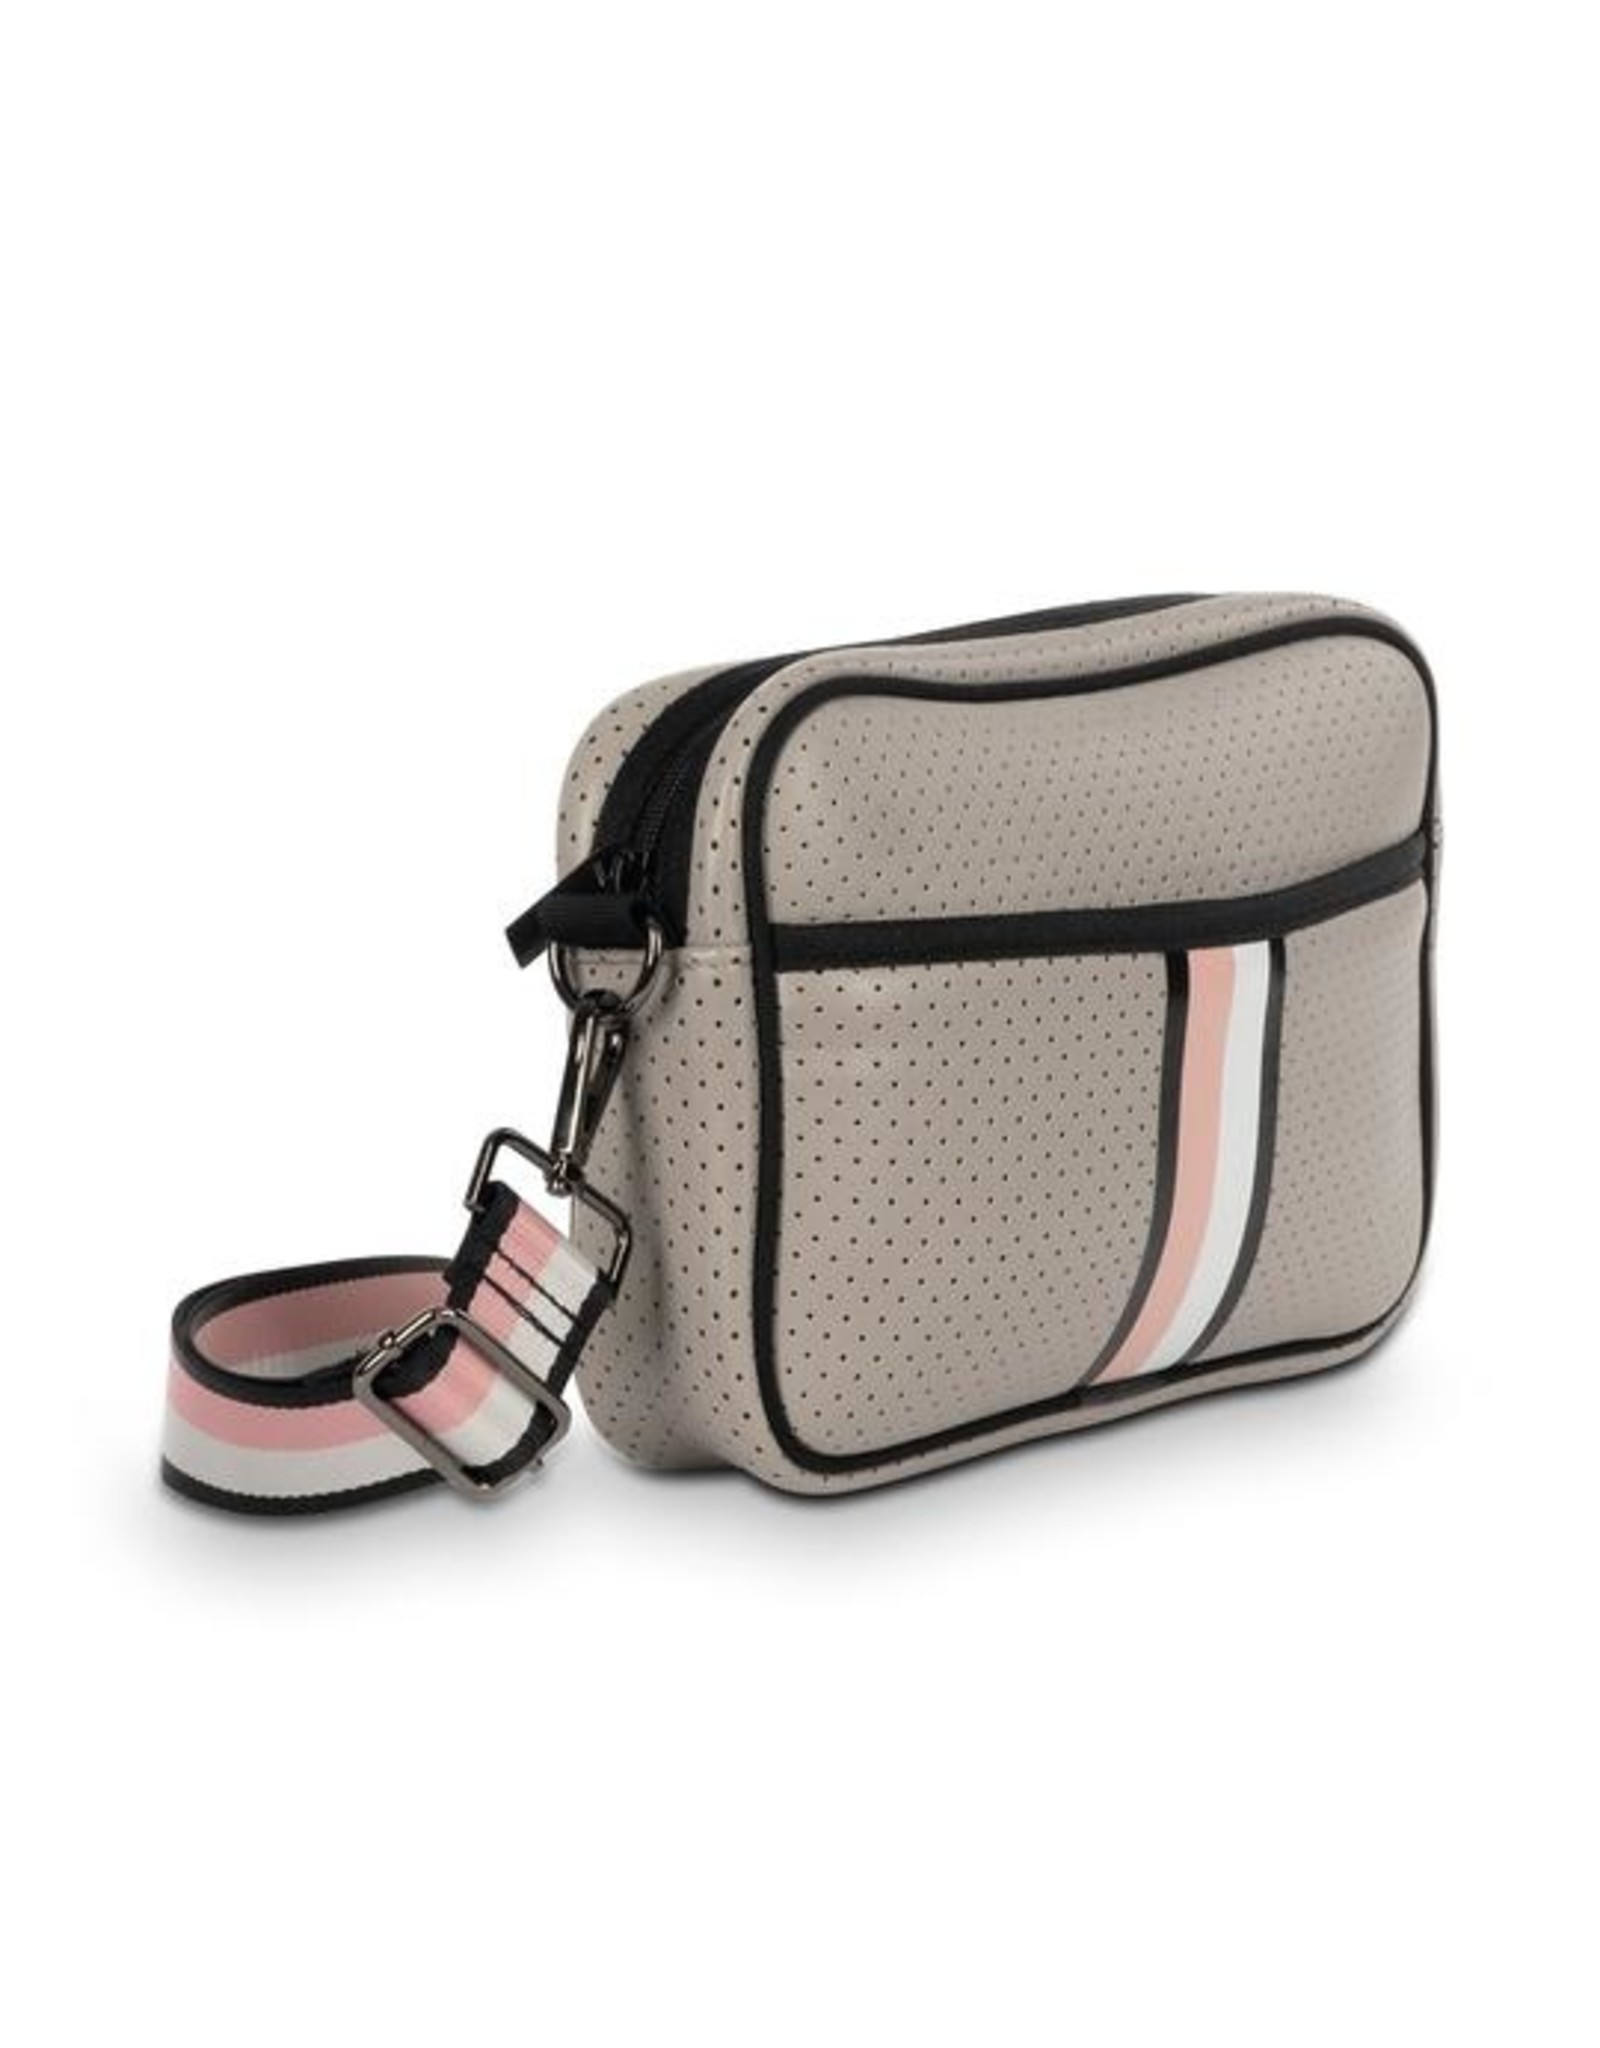 Beige with pink and white crossbody